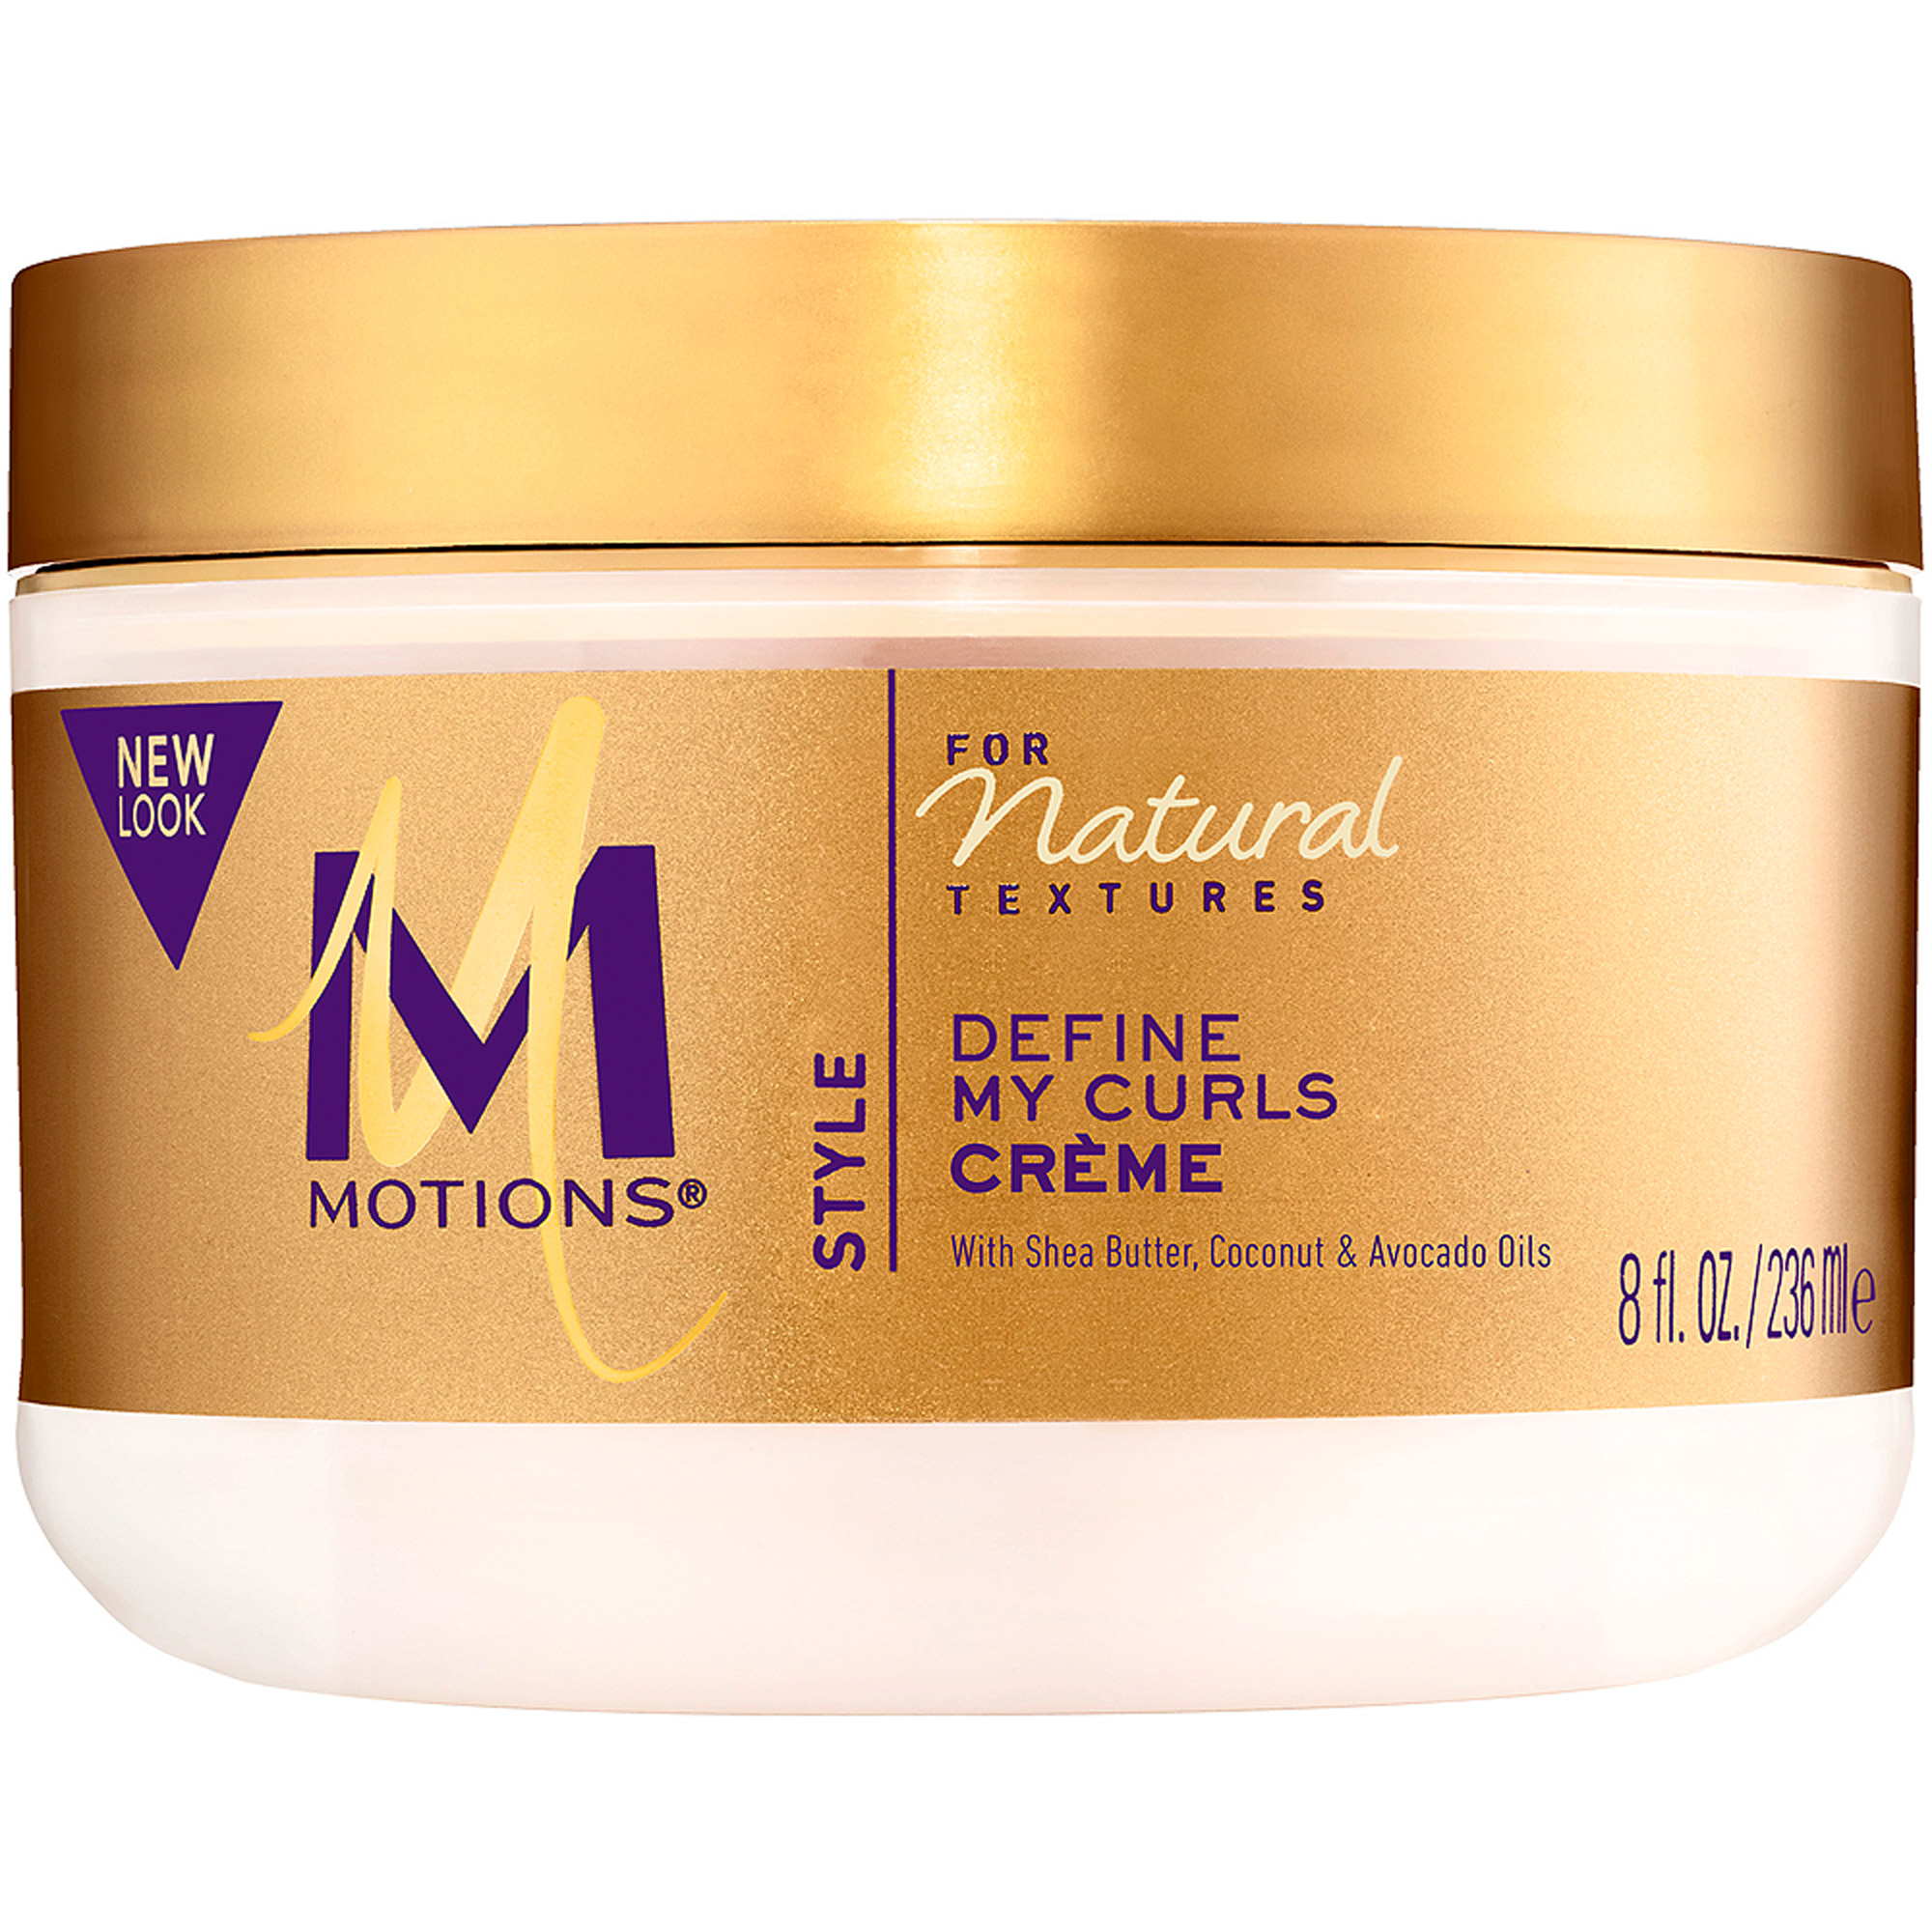 Motions Naturally You! Define My Curls Creme, 8 oz